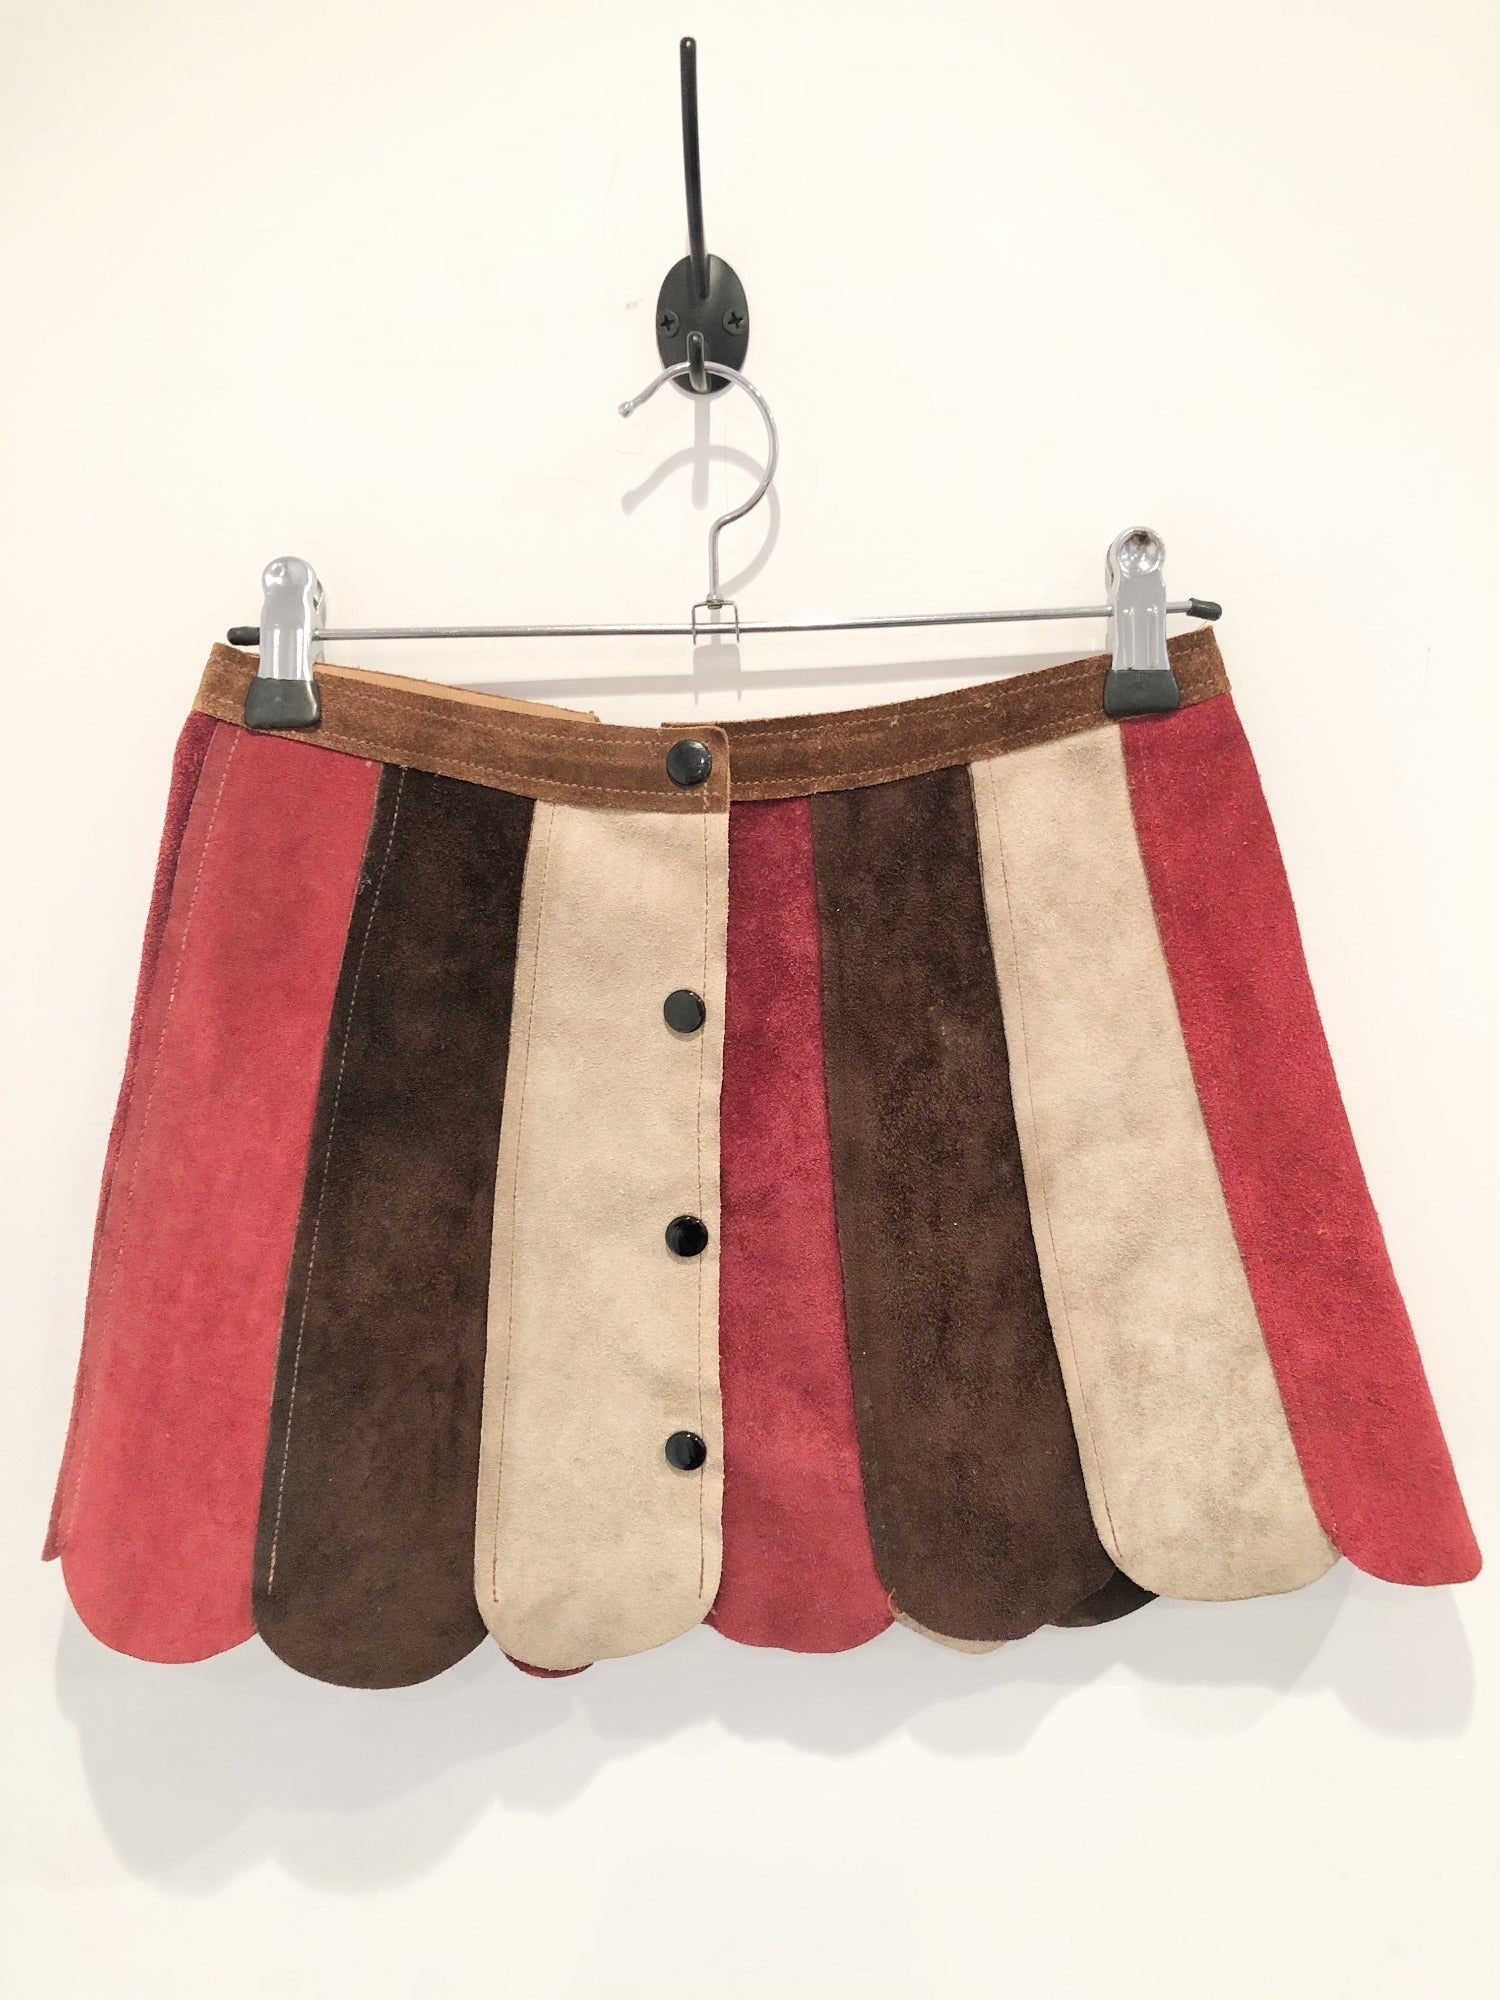 Vintage 1960's Suede Mini Skirt - Size 4/6 XS - Vintage Women's Clothing